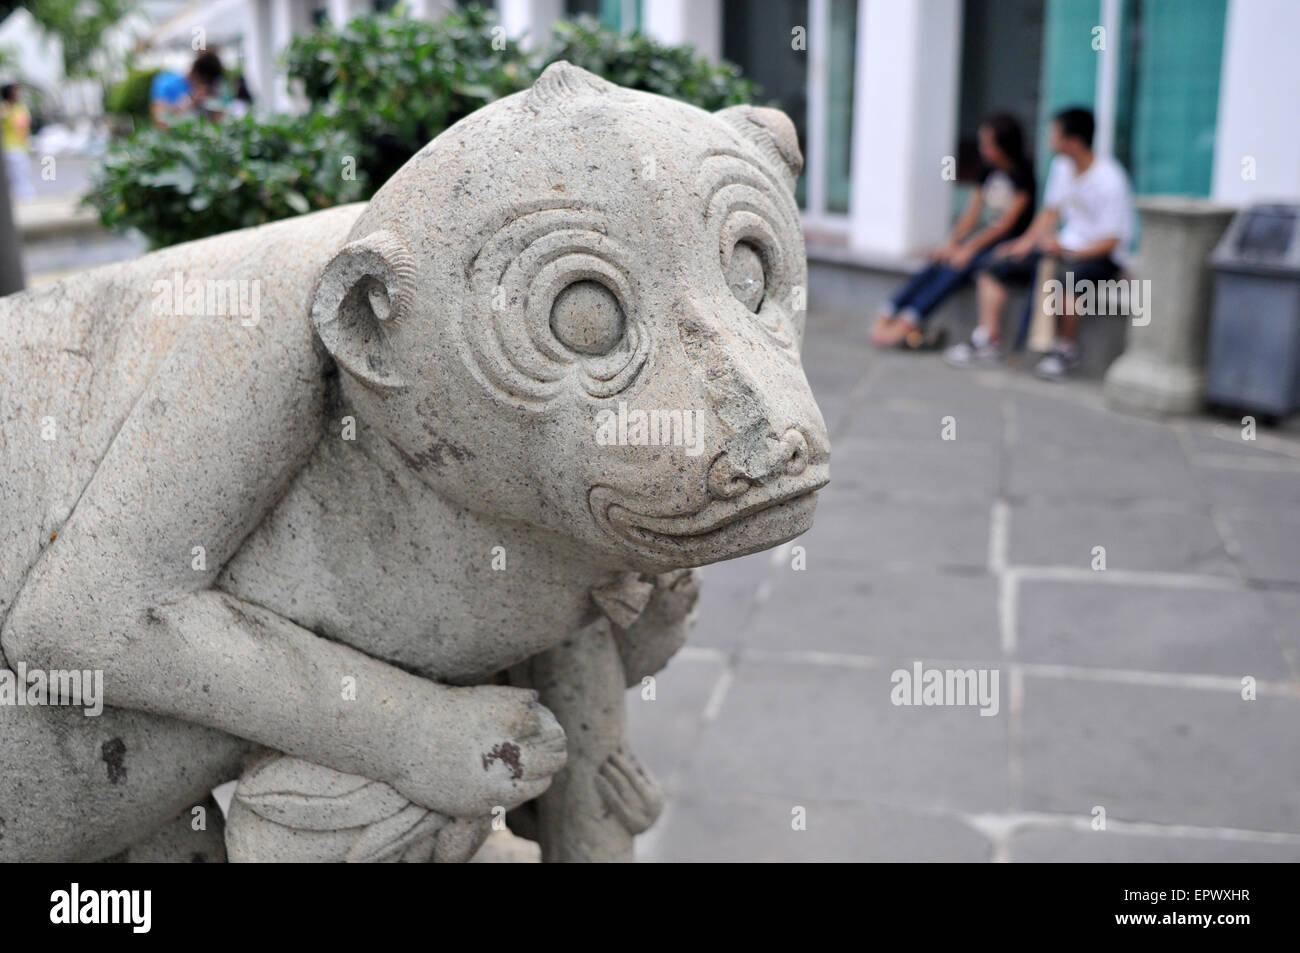 Statue at Wat Arum Temple in Bangkok, Thailand. - Stock Image